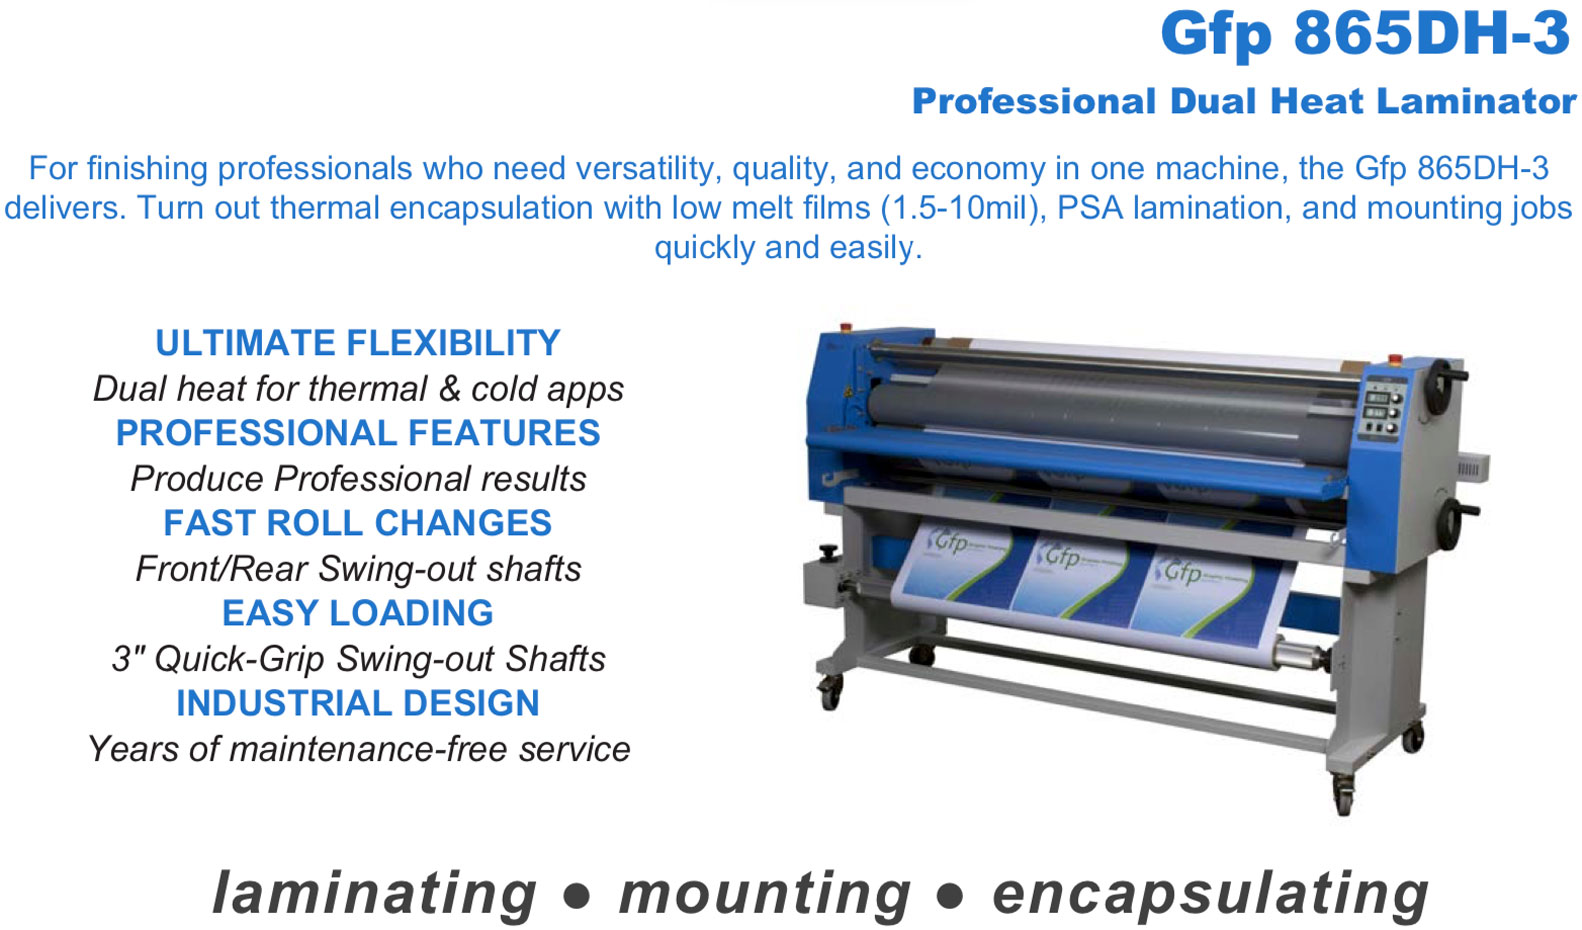 gfp 865dh-3 professional dual heat laminator showing for laminating mounting and encapsulating with dual heat front-rear swing out shafts 3 inch quick grip shafts